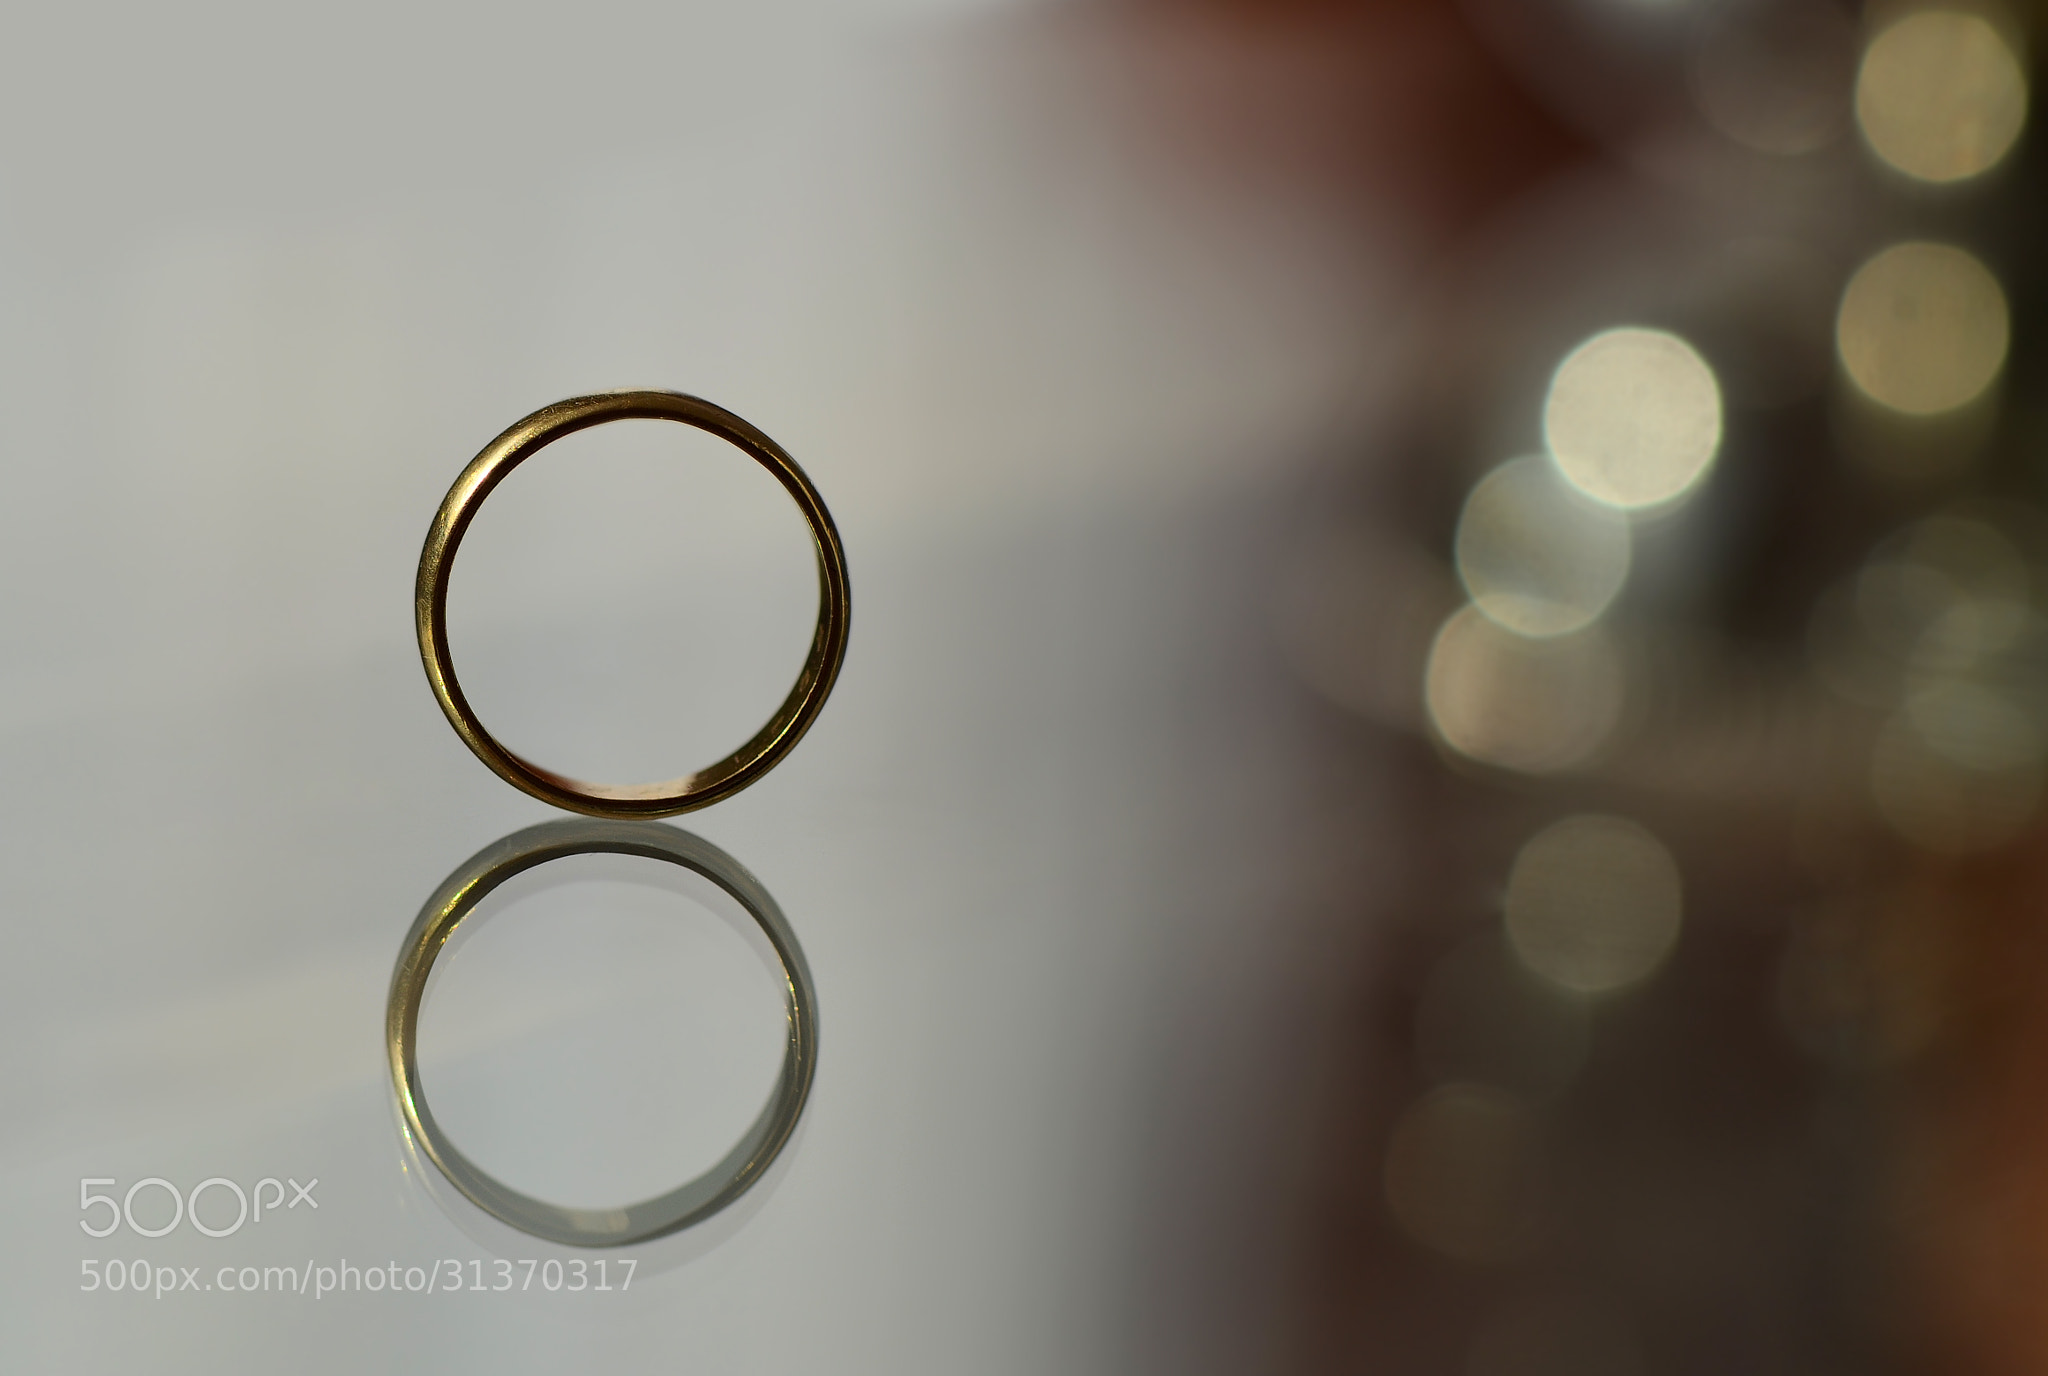 Photograph Gold rings by Juan Manuel Valle Durán on 500px